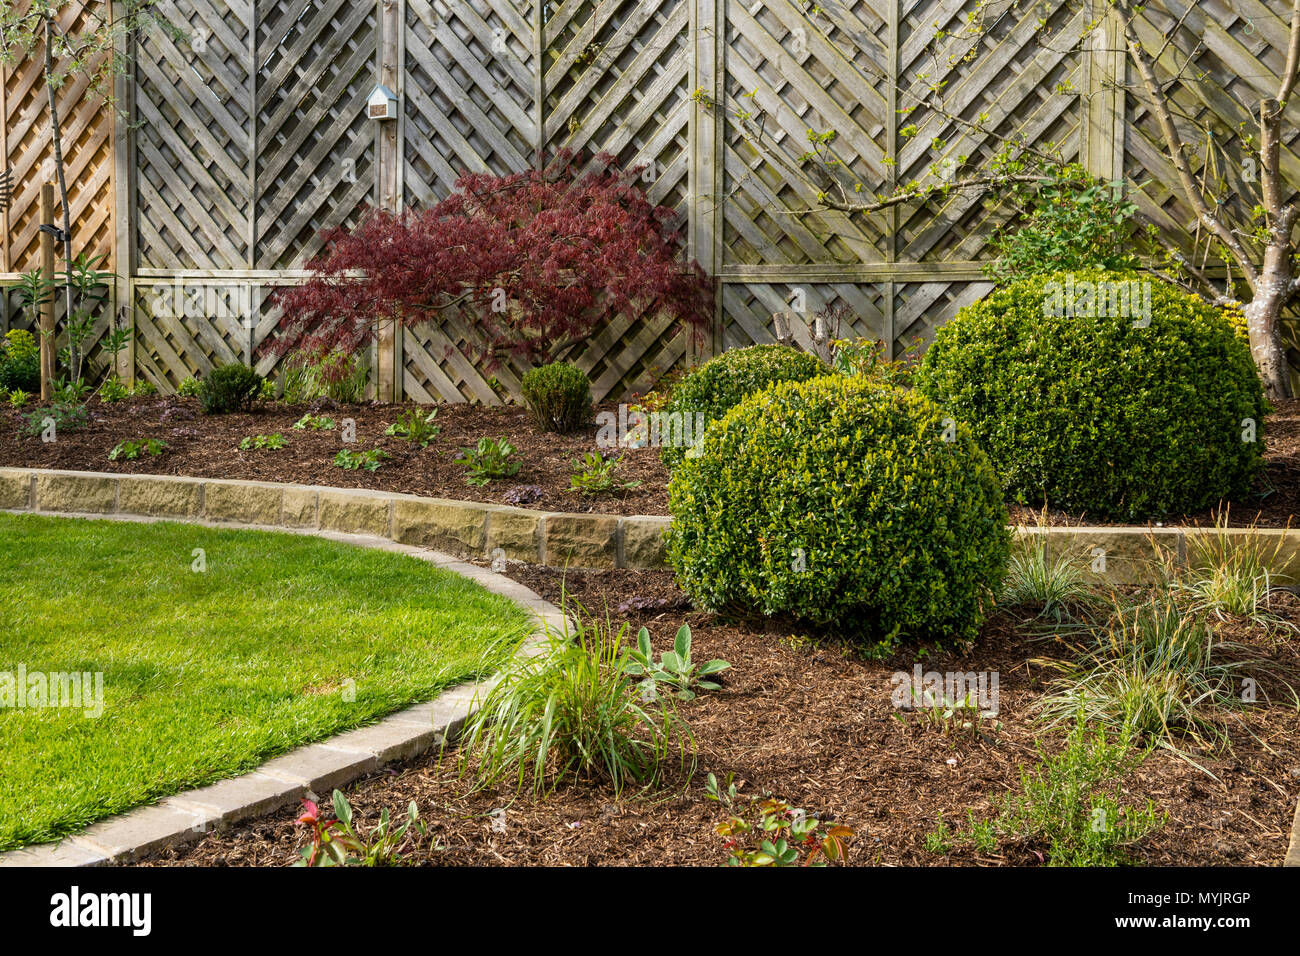 Beautiful, landscaped, private garden close-up with contemporary design, border plants, shrubs, box balls, acer & neat lawn - Yorkshire, England, UK. - Stock Image